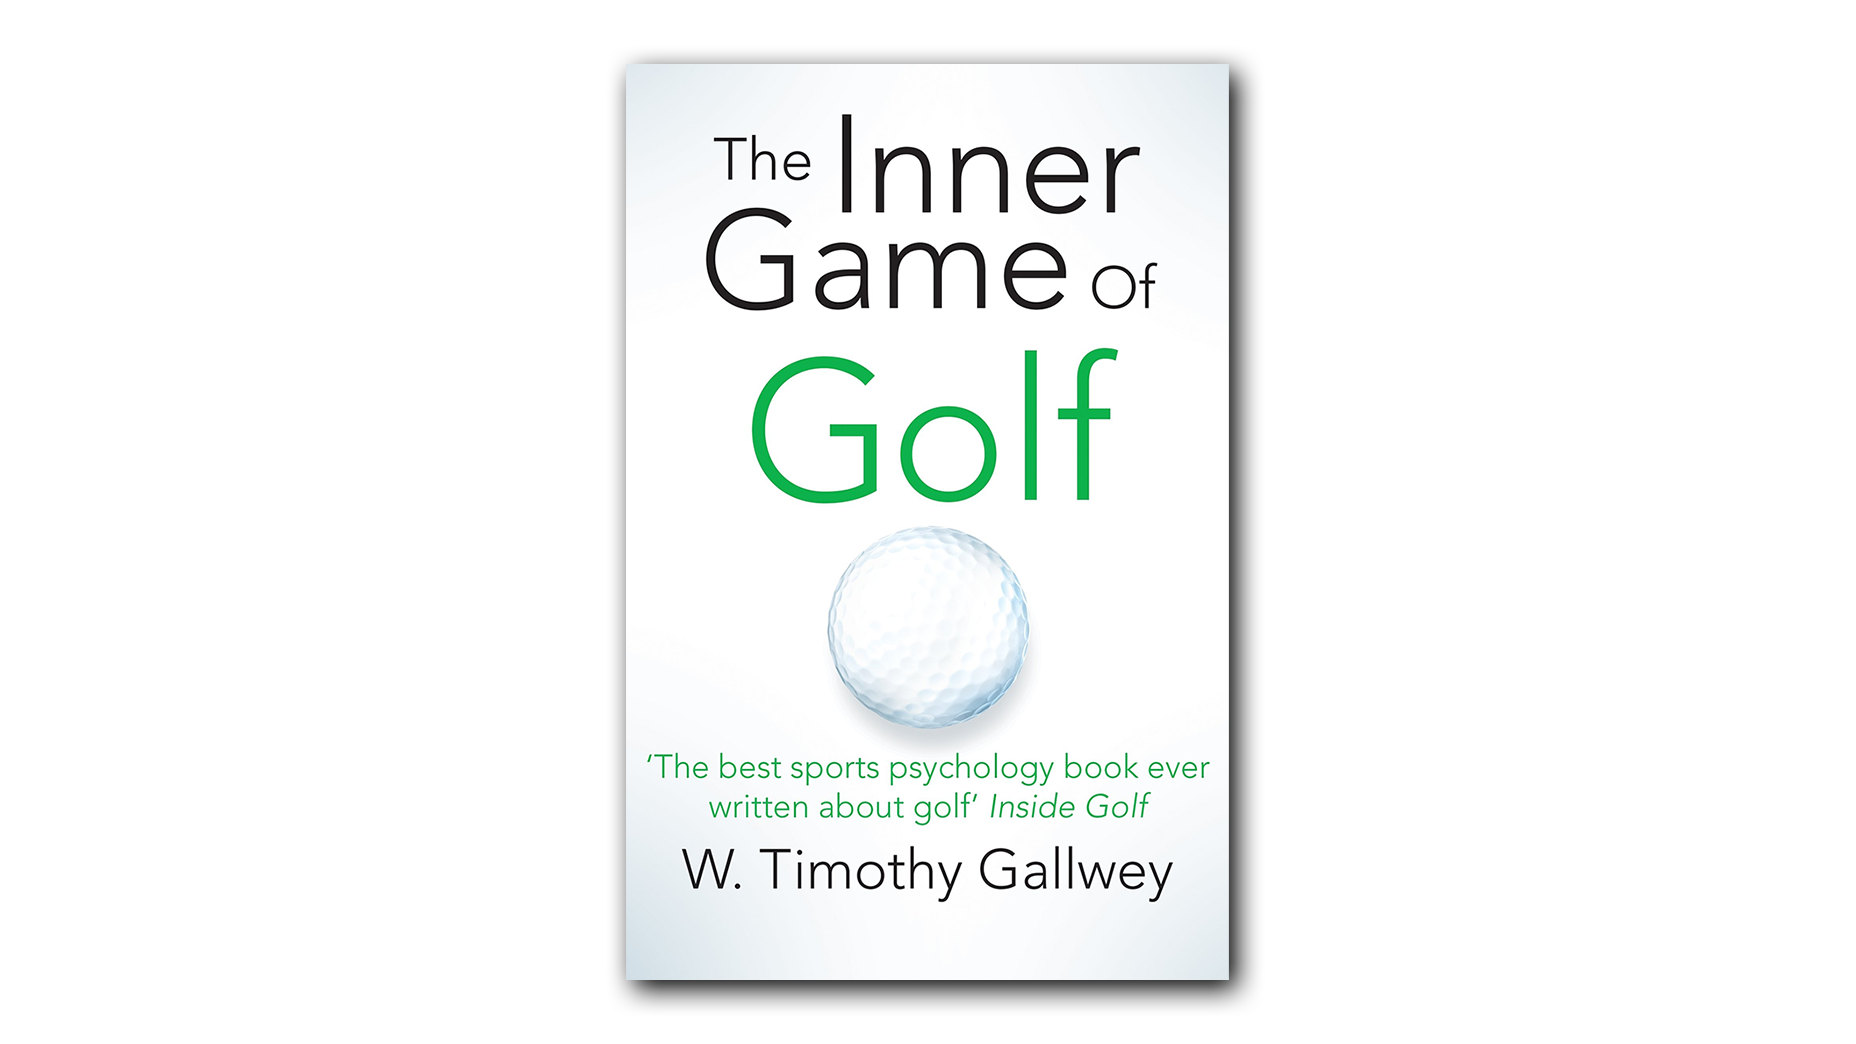 The Inner Game Of Golf - W. Timothy Gallwey